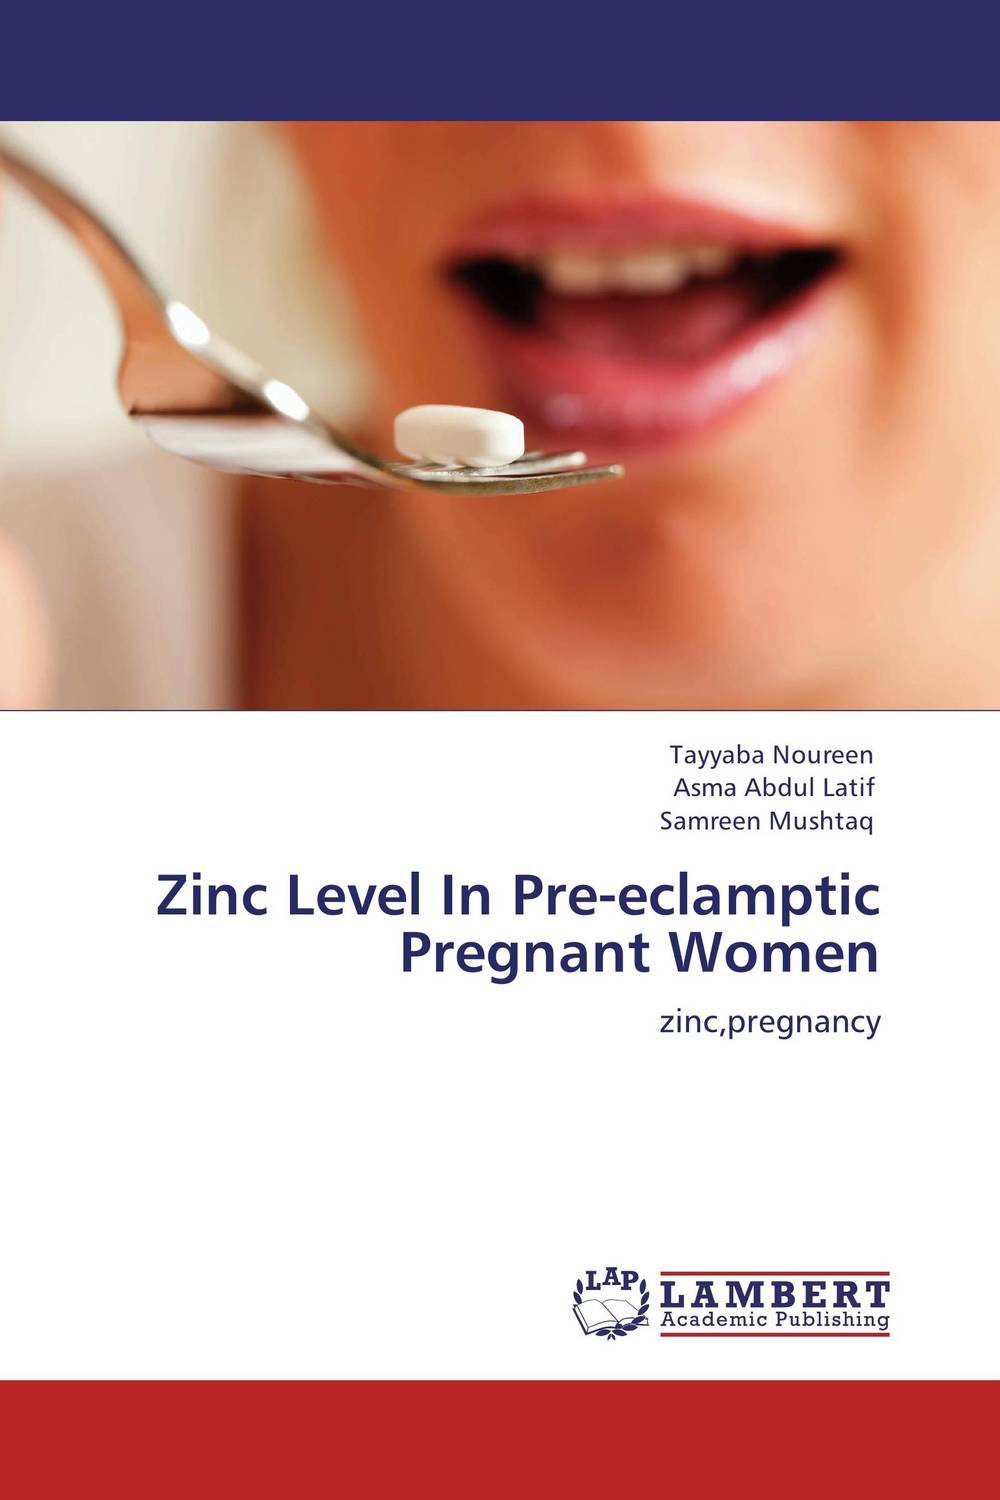 Zinc Level In Pre-eclamptic Pregnant Women s3 b s3 8 s3 6 s2 00 s2 oo s3 9